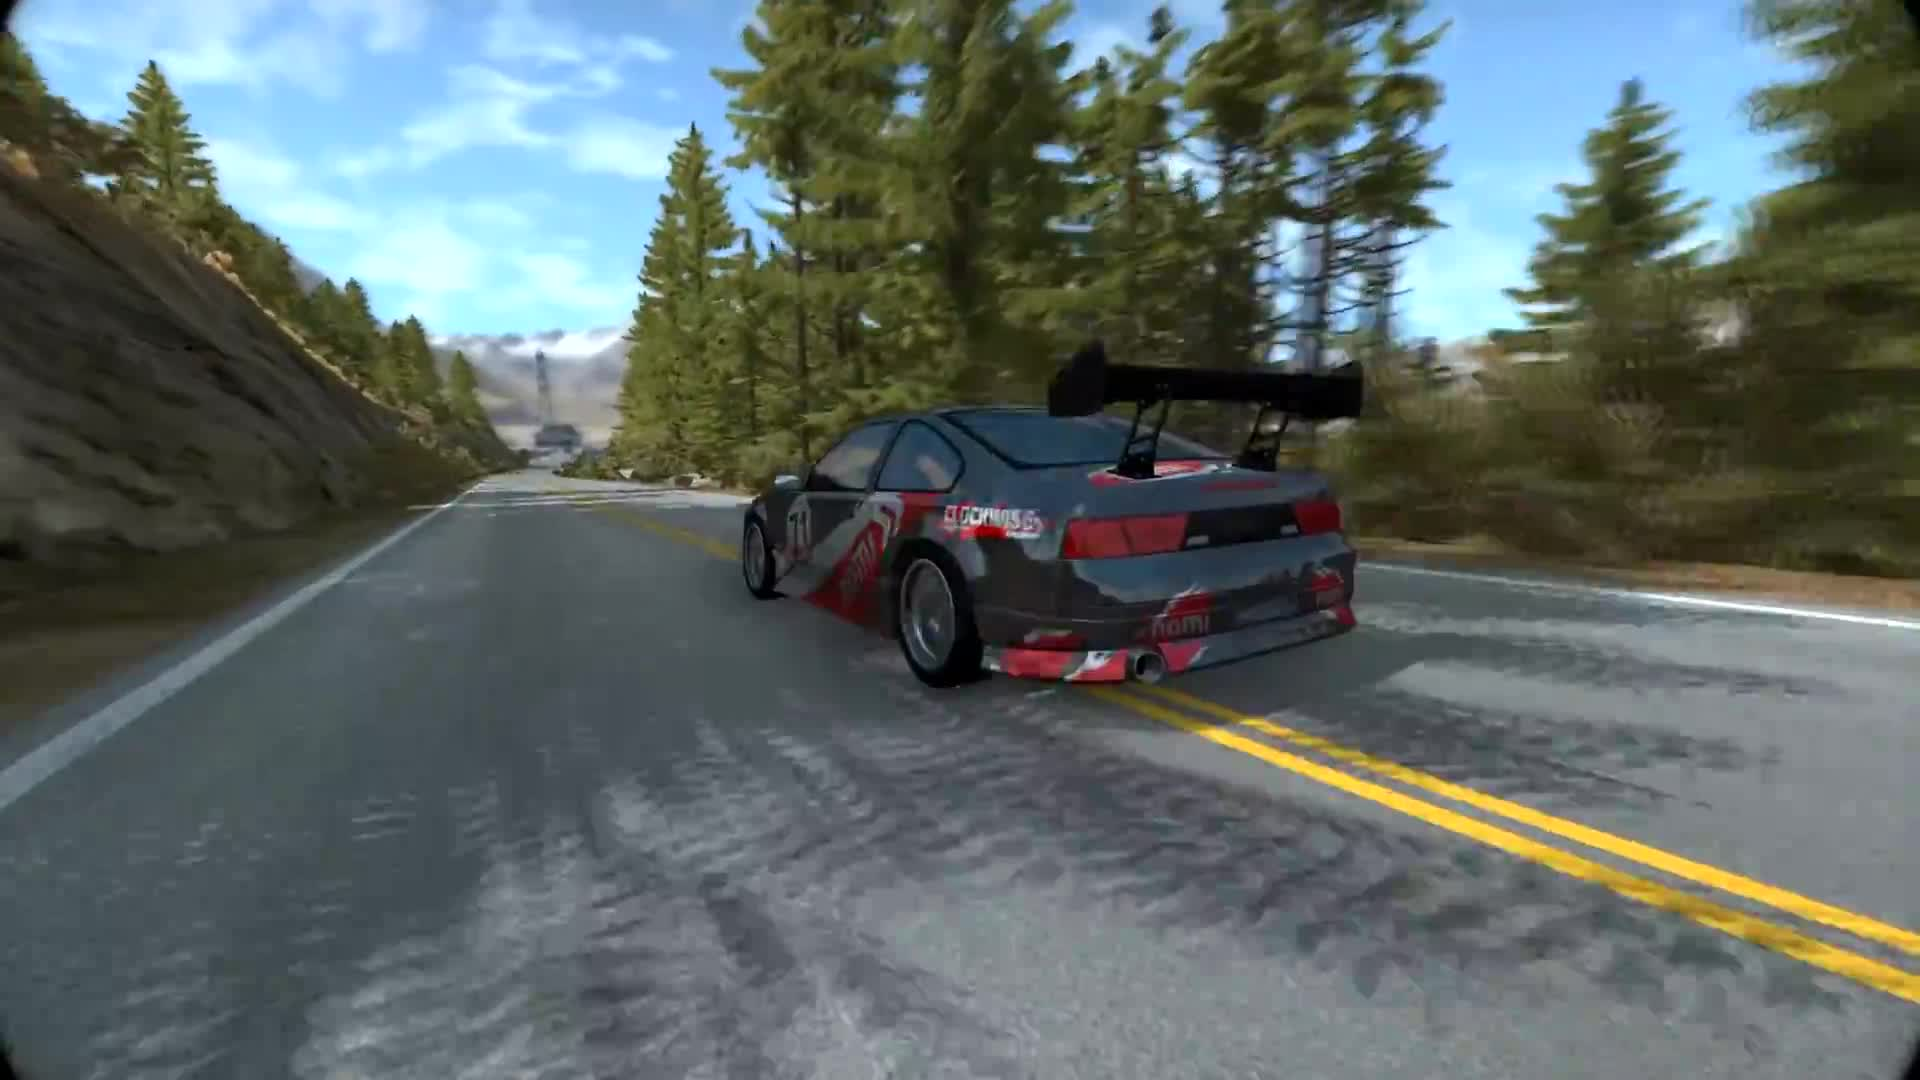 BeamNG, BeamNG Drive, BeamNG.Drive, Crash Hard, Gaming, BeamNG Drive GIFs